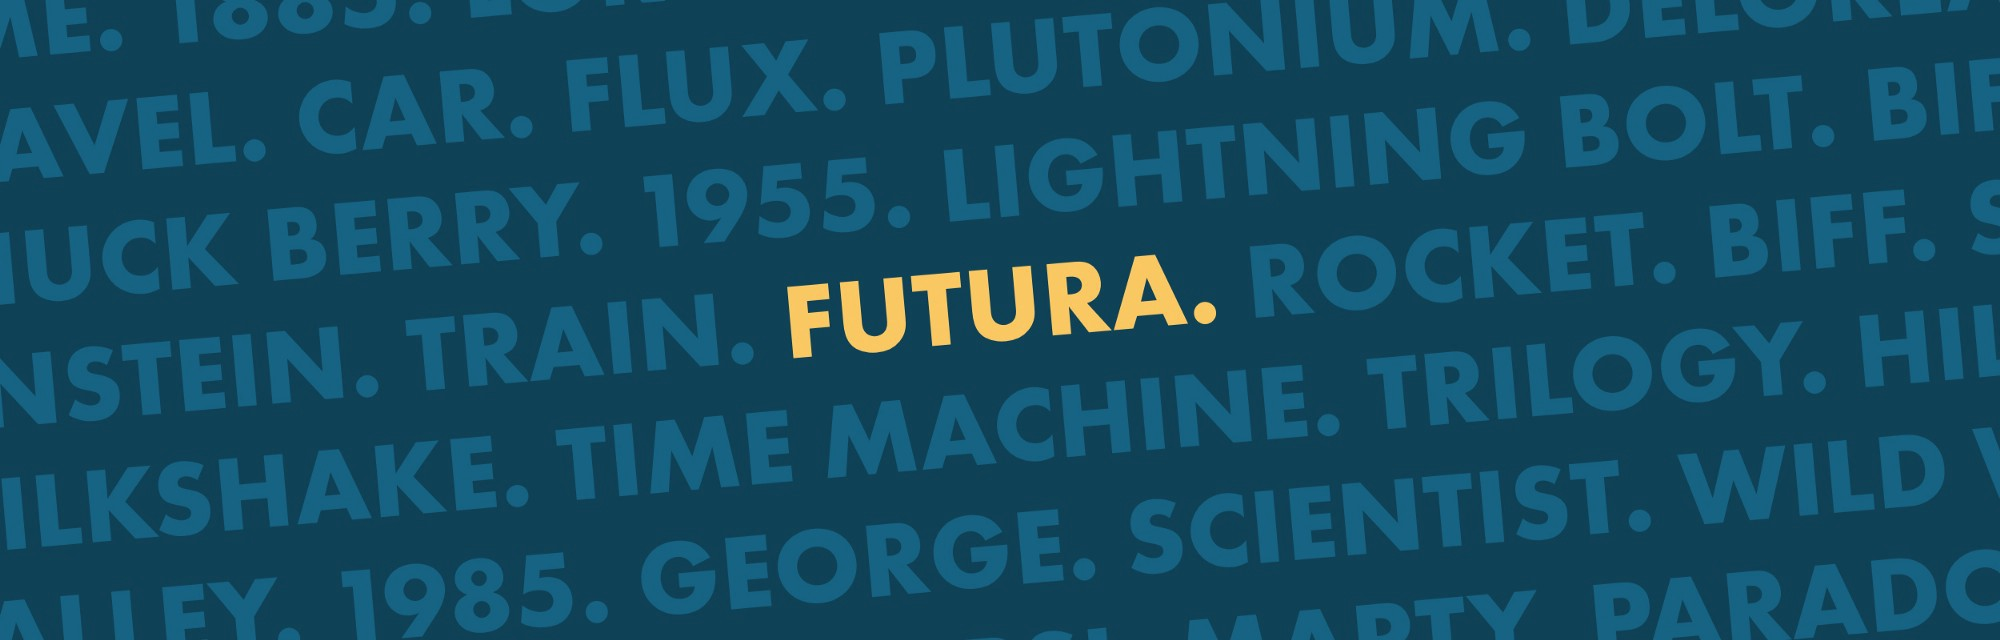 Getting Futura right in UI design - UX Collective